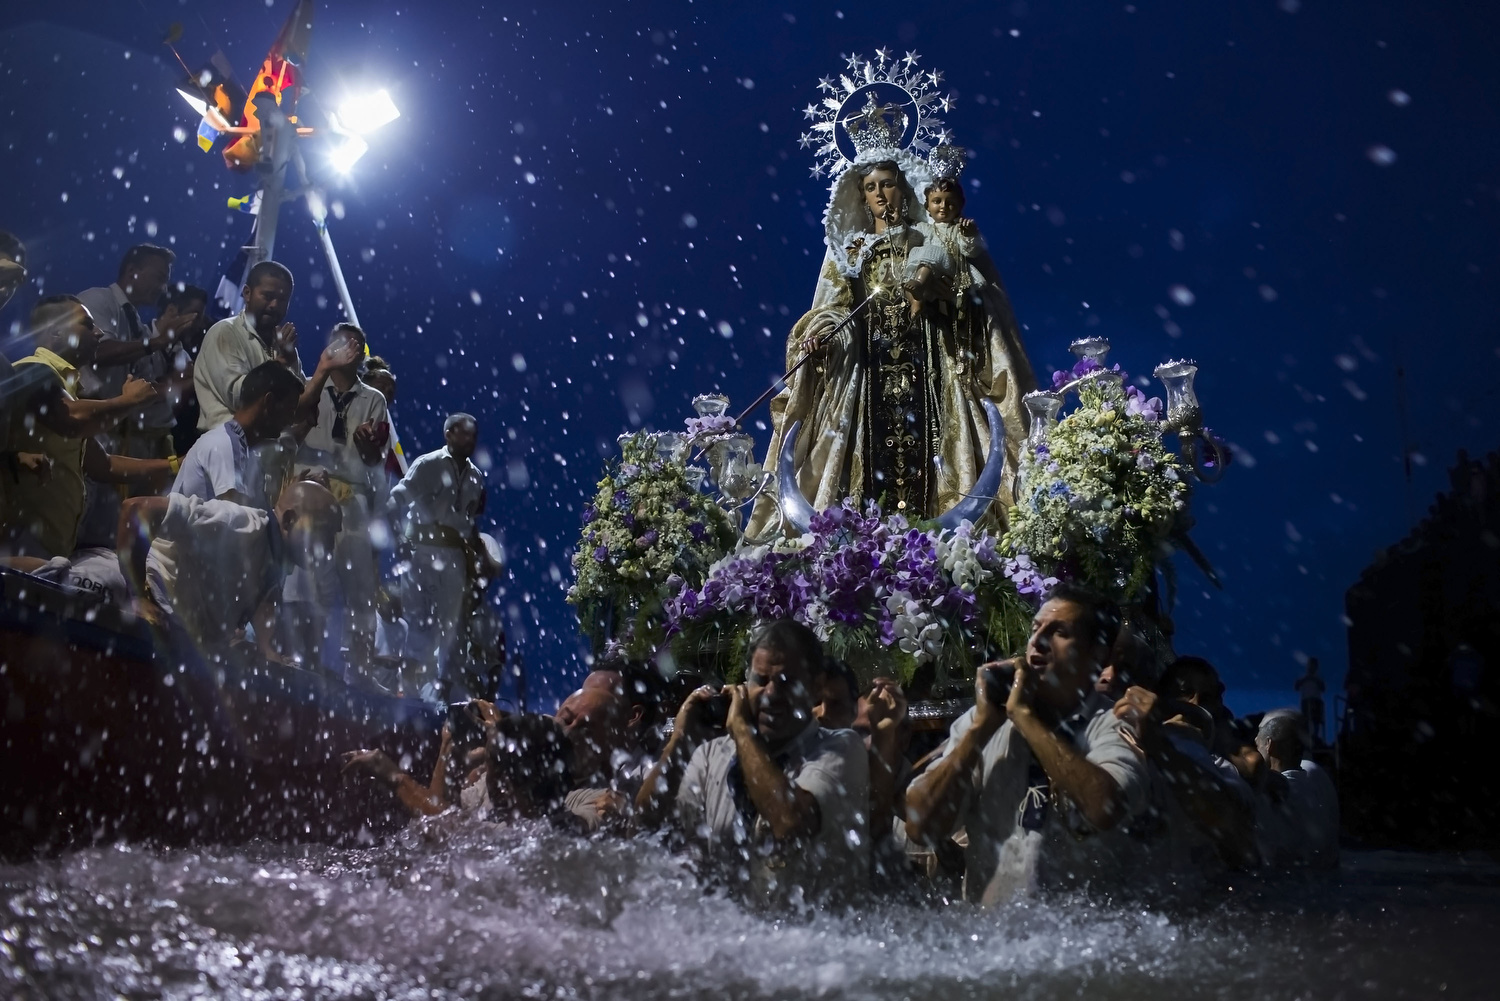 Carriers of the Great God Power  brotherhood  unload  Virgen  del  Carmen   statue  after its journey on July 15, 2014 at  Puerto de la Cruz   dock  on the  Canary island  of  Tenerife , Spain. Since 1921, the statue of the Virgen del Carmen,  patron saint  of  fishermen , has been carried with great fanfare annually as part of July Festivities to the Puerto de la Cruz dock where, at the end of its procession, it is hoisted aboard a decorated  boat . In recent years, attendance at the event has numbered more than 35,000 people.